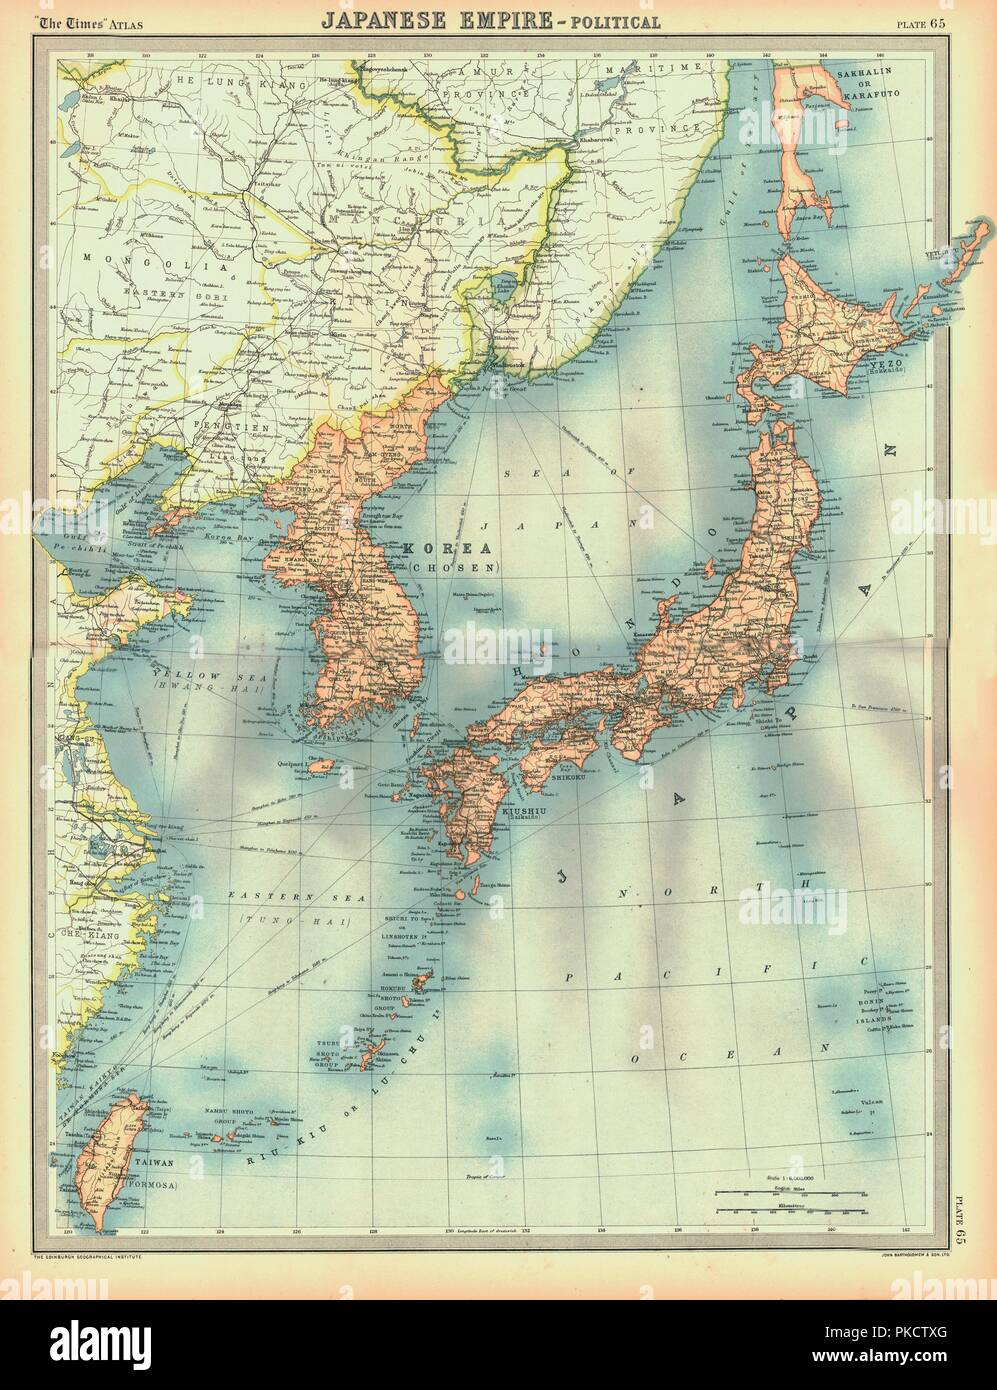 Political Map Of The Japanese Empire Early 20th Century Korea Was